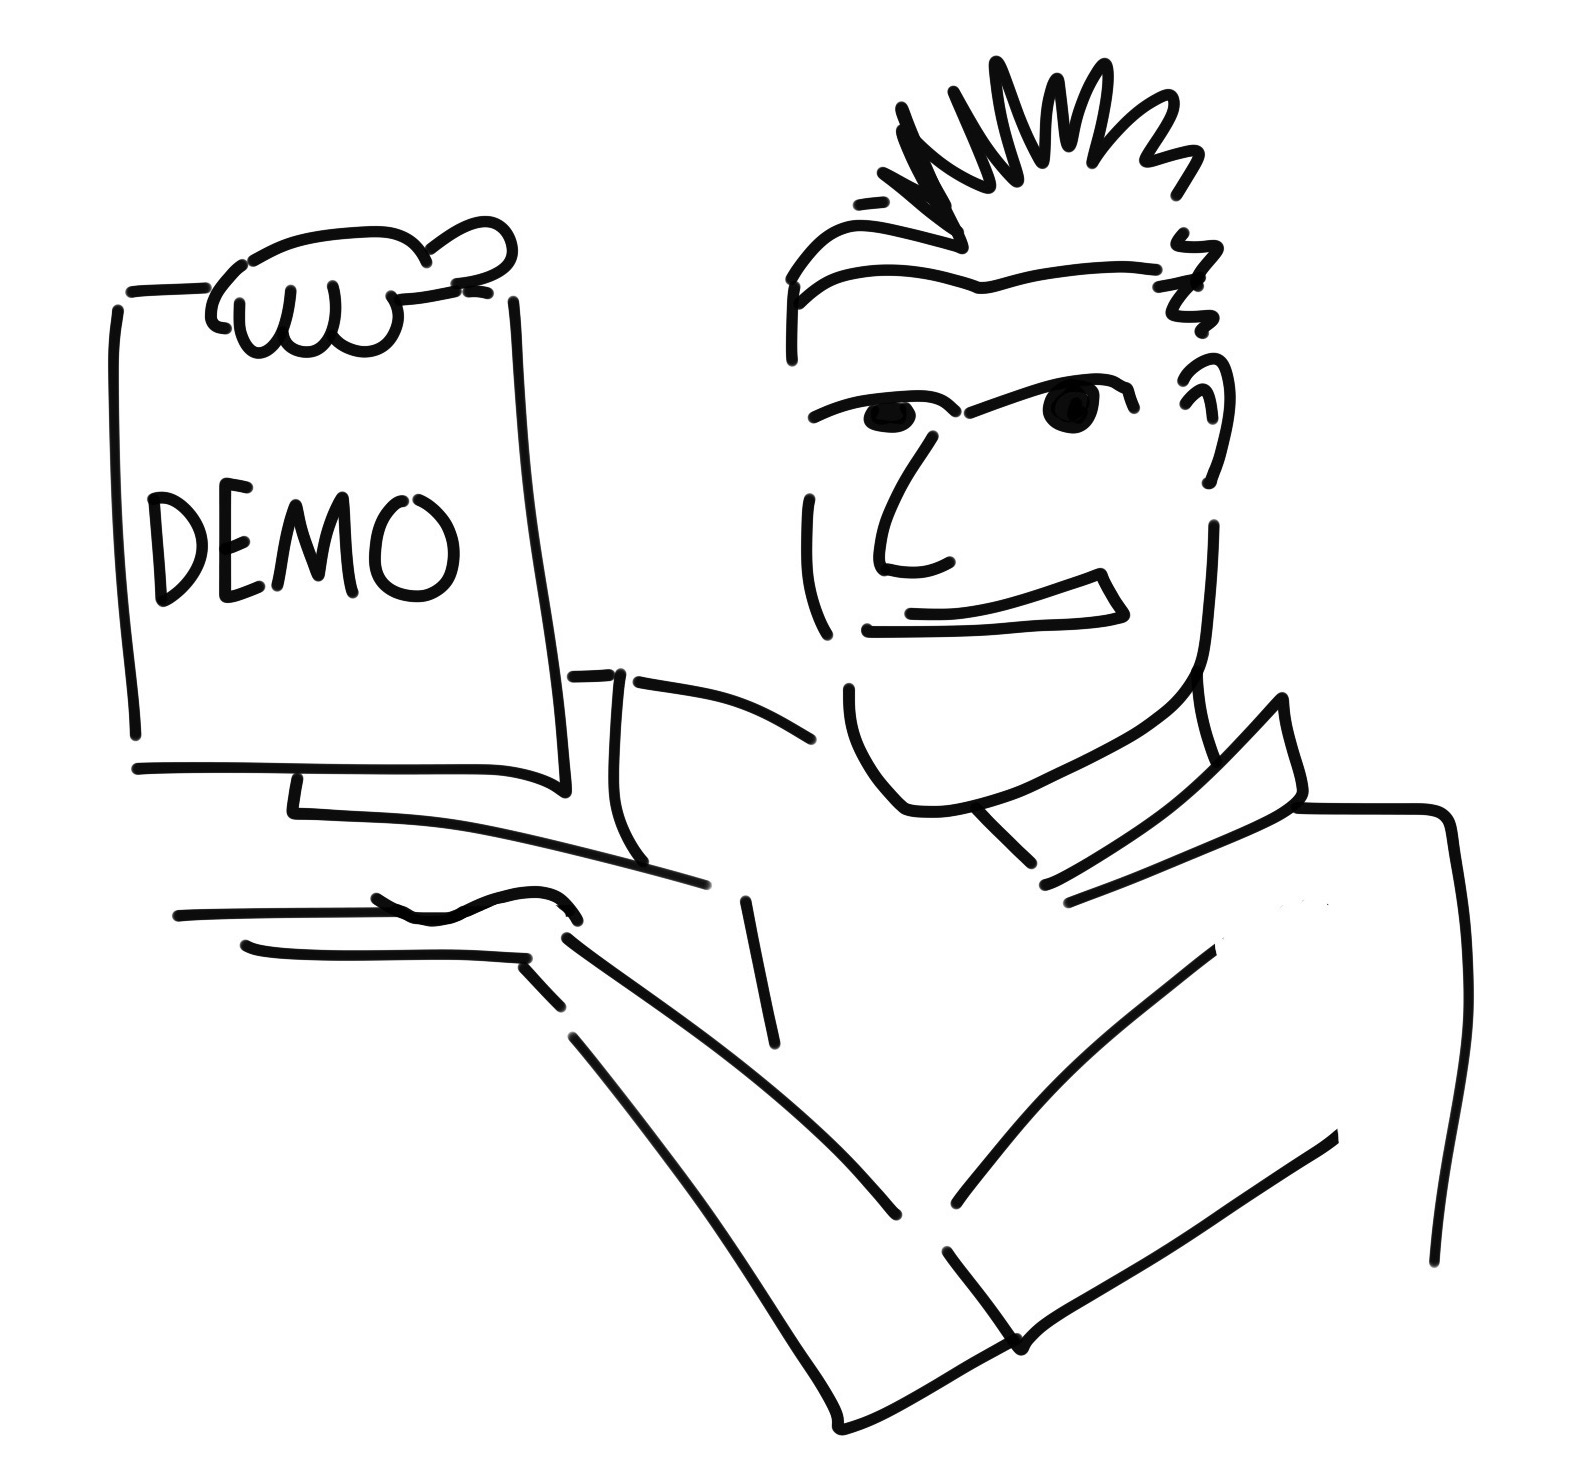 Demo version 1